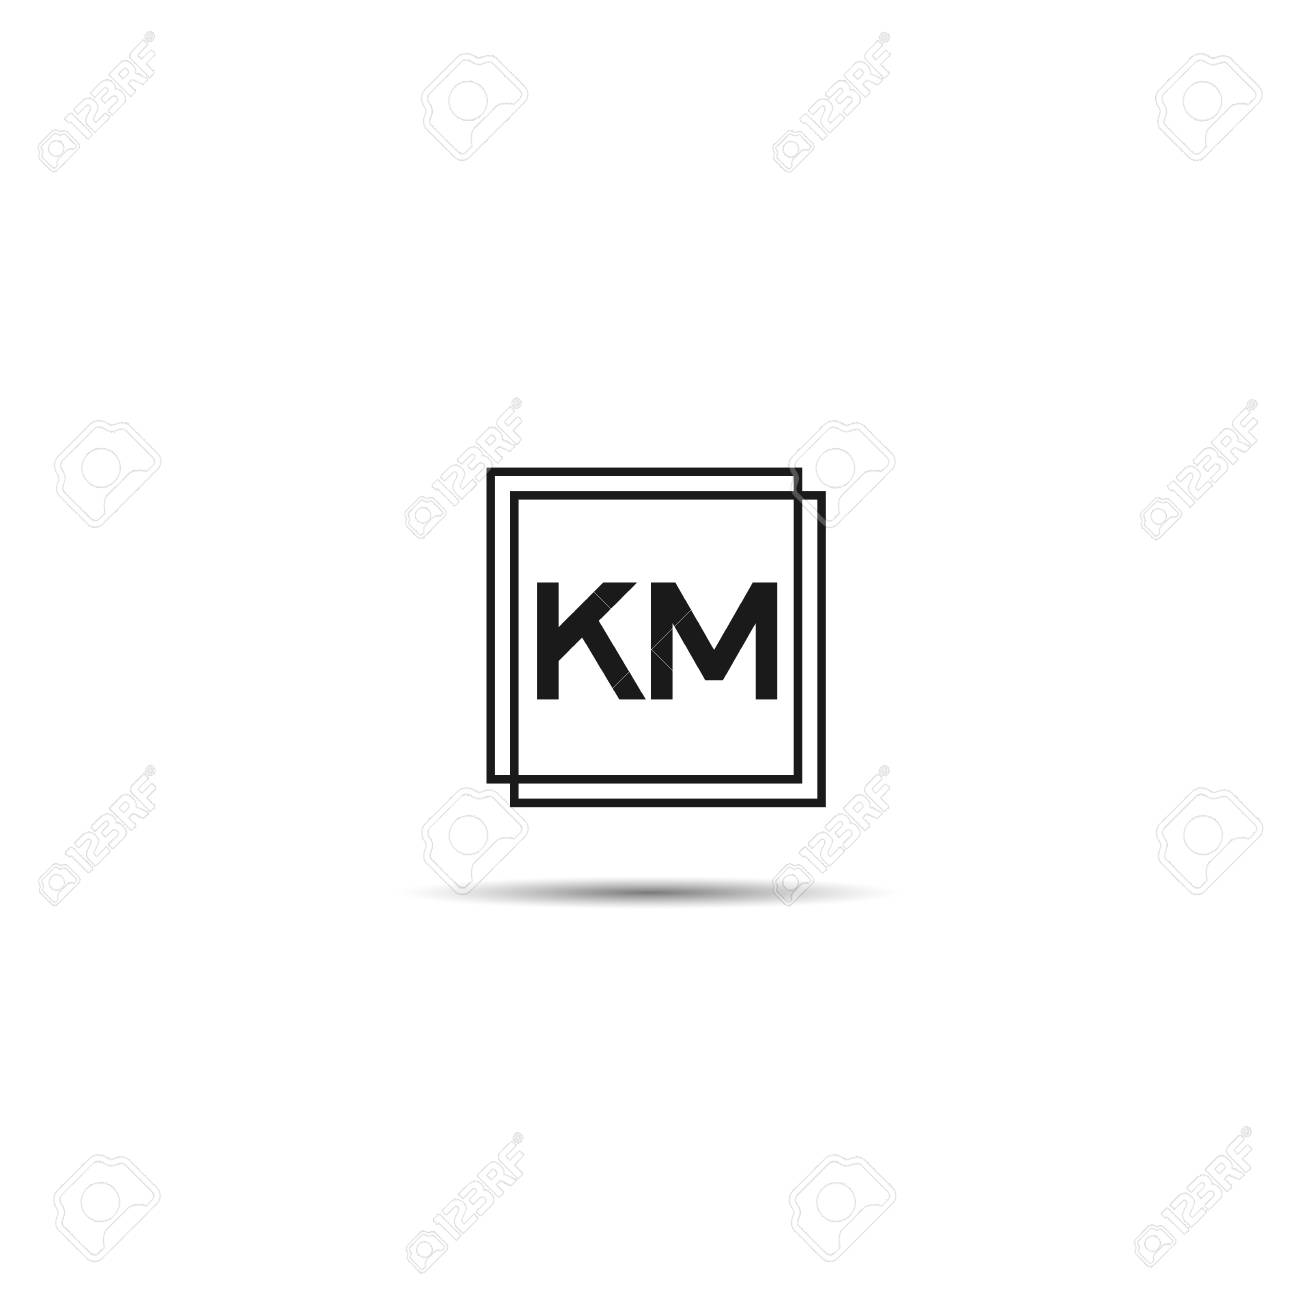 Initial Letter Km Logo Template Design Royalty Free Cliparts Vectors And Stock Illustration Image 109595618